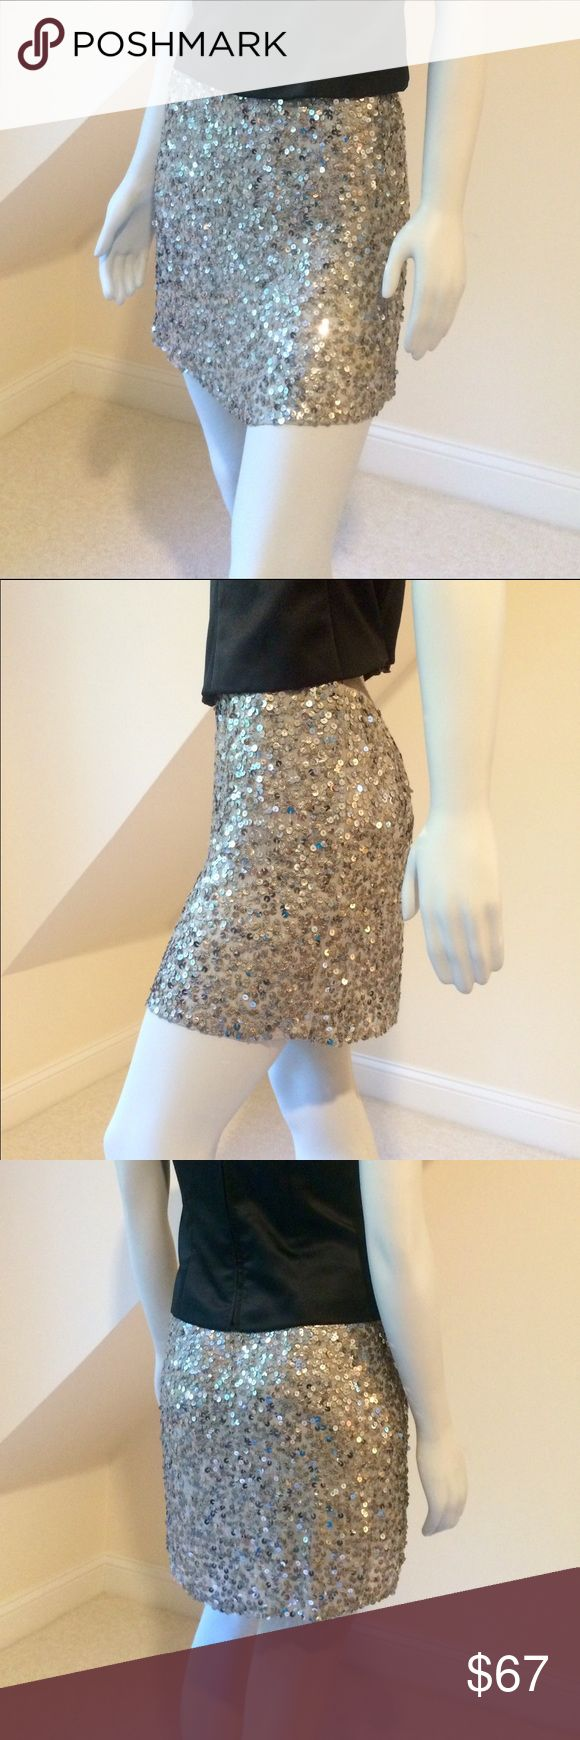 Alice + Olivia Sequin Skirt Alice + Olivia Sequin Skirt....thick metal sequins adorn sheer mini...elastic waist...silver, platinum and gunmetal reflect light beautifully...fully lined...100% silk. ***a few sequins may be missing, not noticeable when worn and reflected in price*** Retail $435 Alice + Olivia Skirts Mini